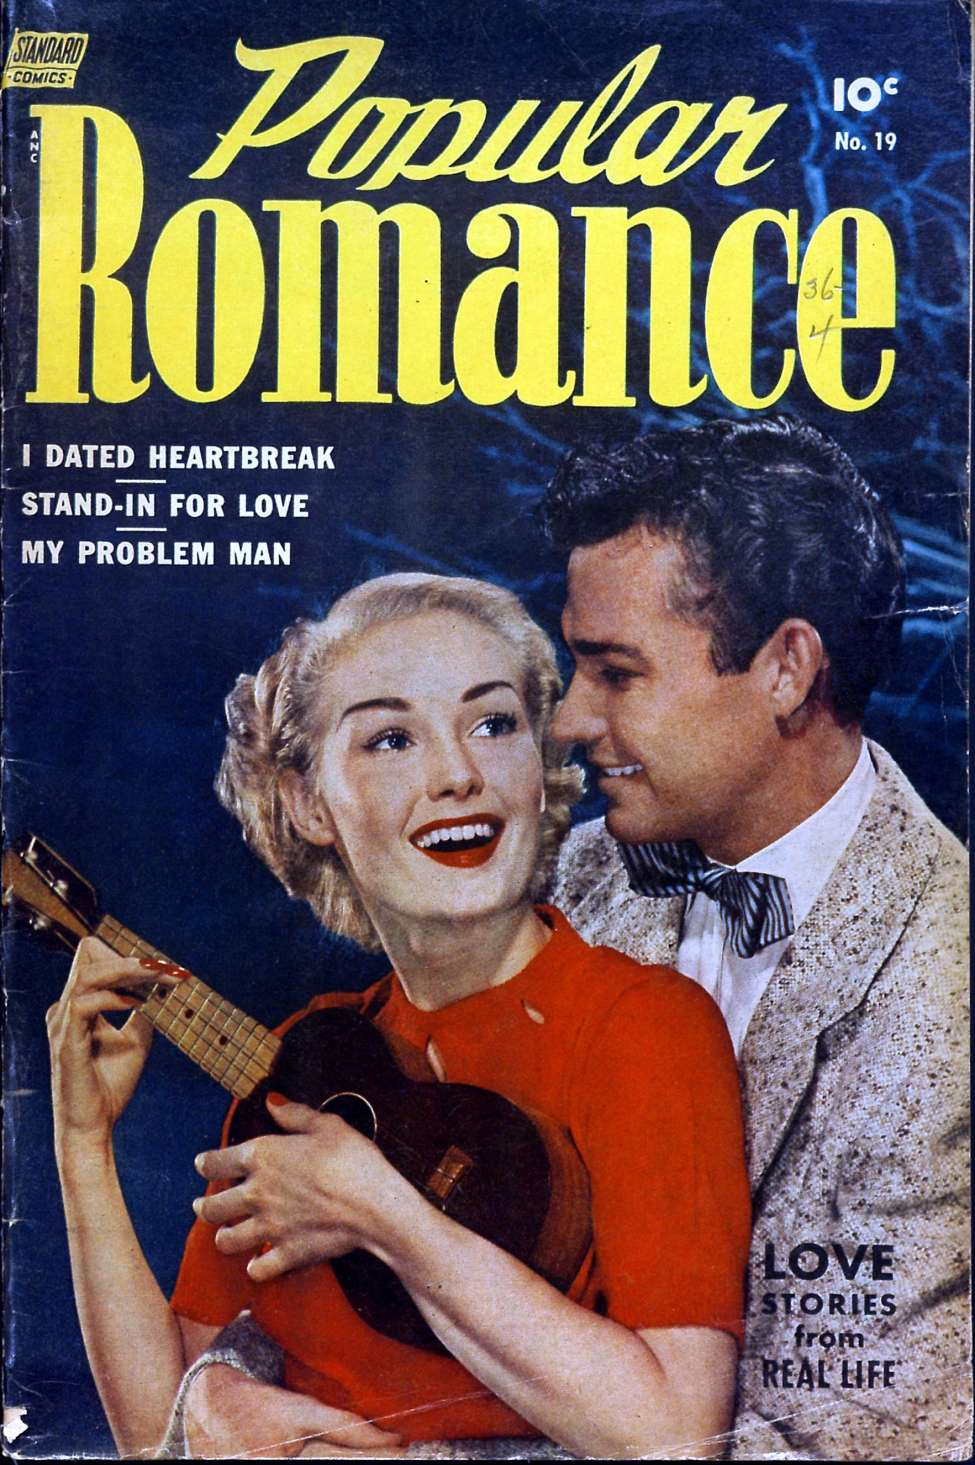 Comic Book Cover For Popular Romance #19